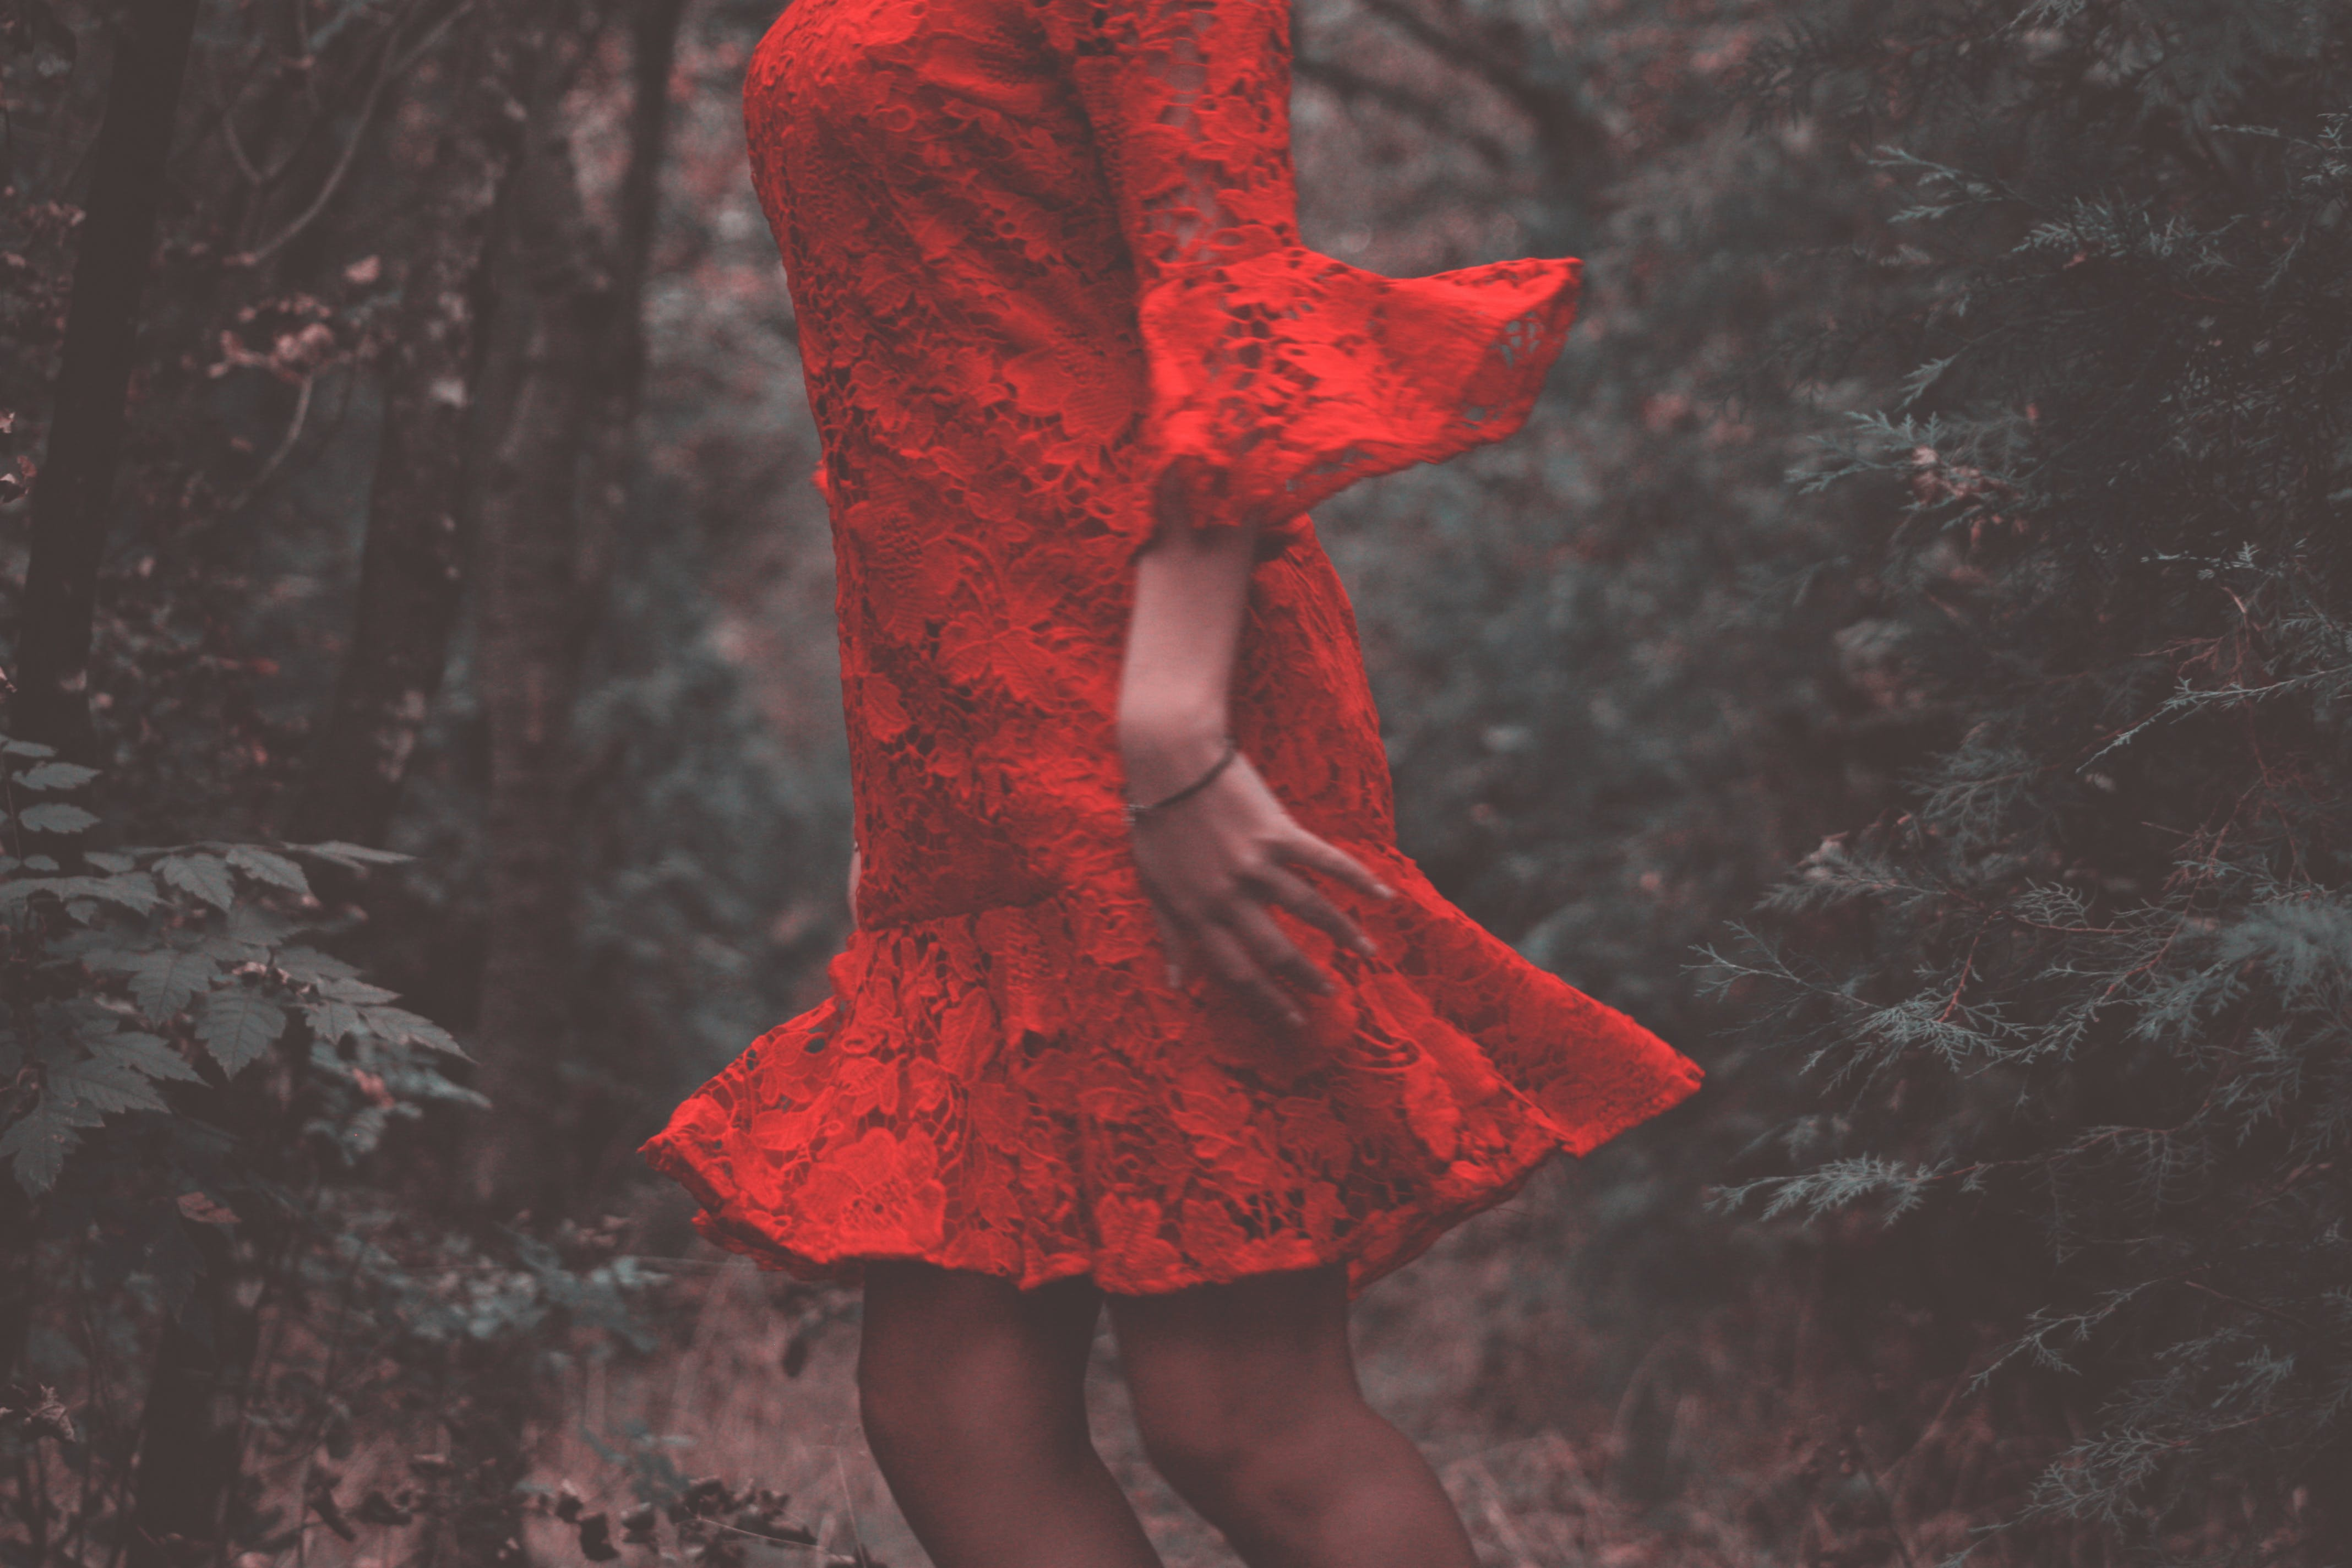 Woman Wearing Red Floral Long-sleeved Dress